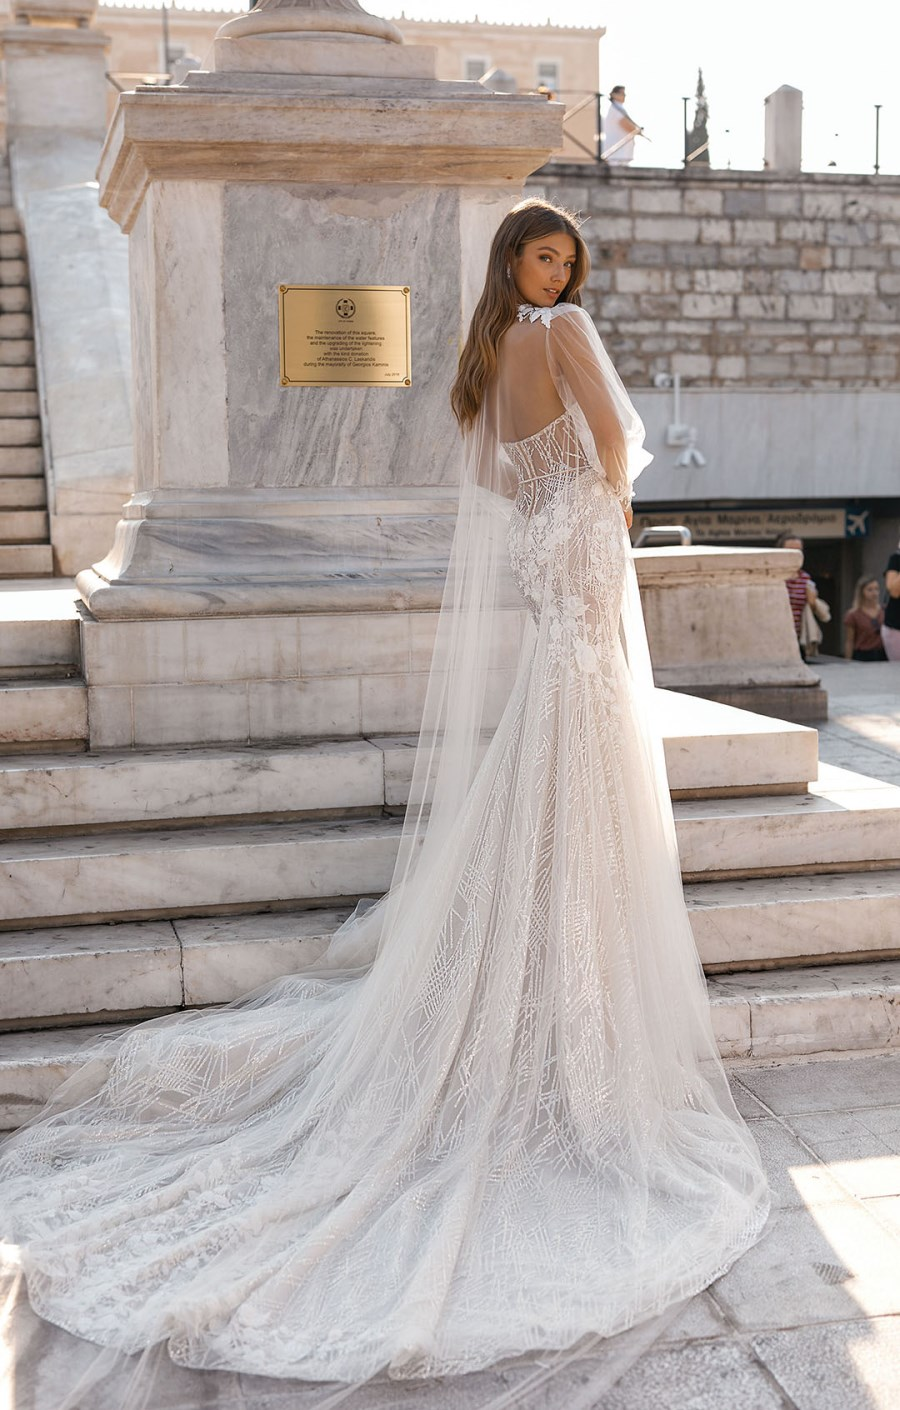 berta-wedding-dress-2019-1 (10)_1